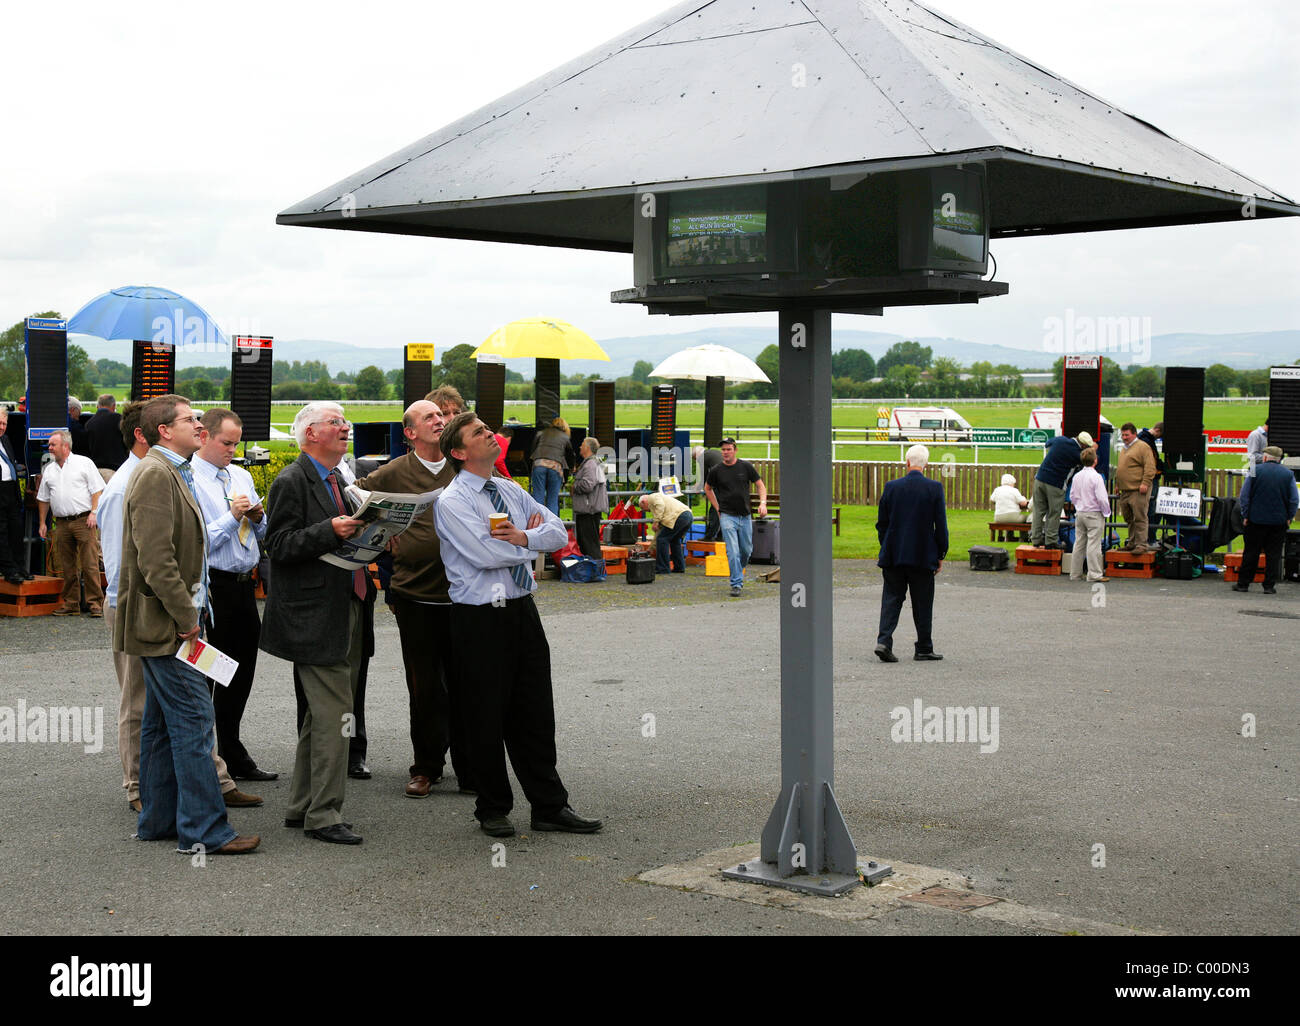 A group of men at a Racecourse, studying the Betting Odds on Monitors - Stock Image